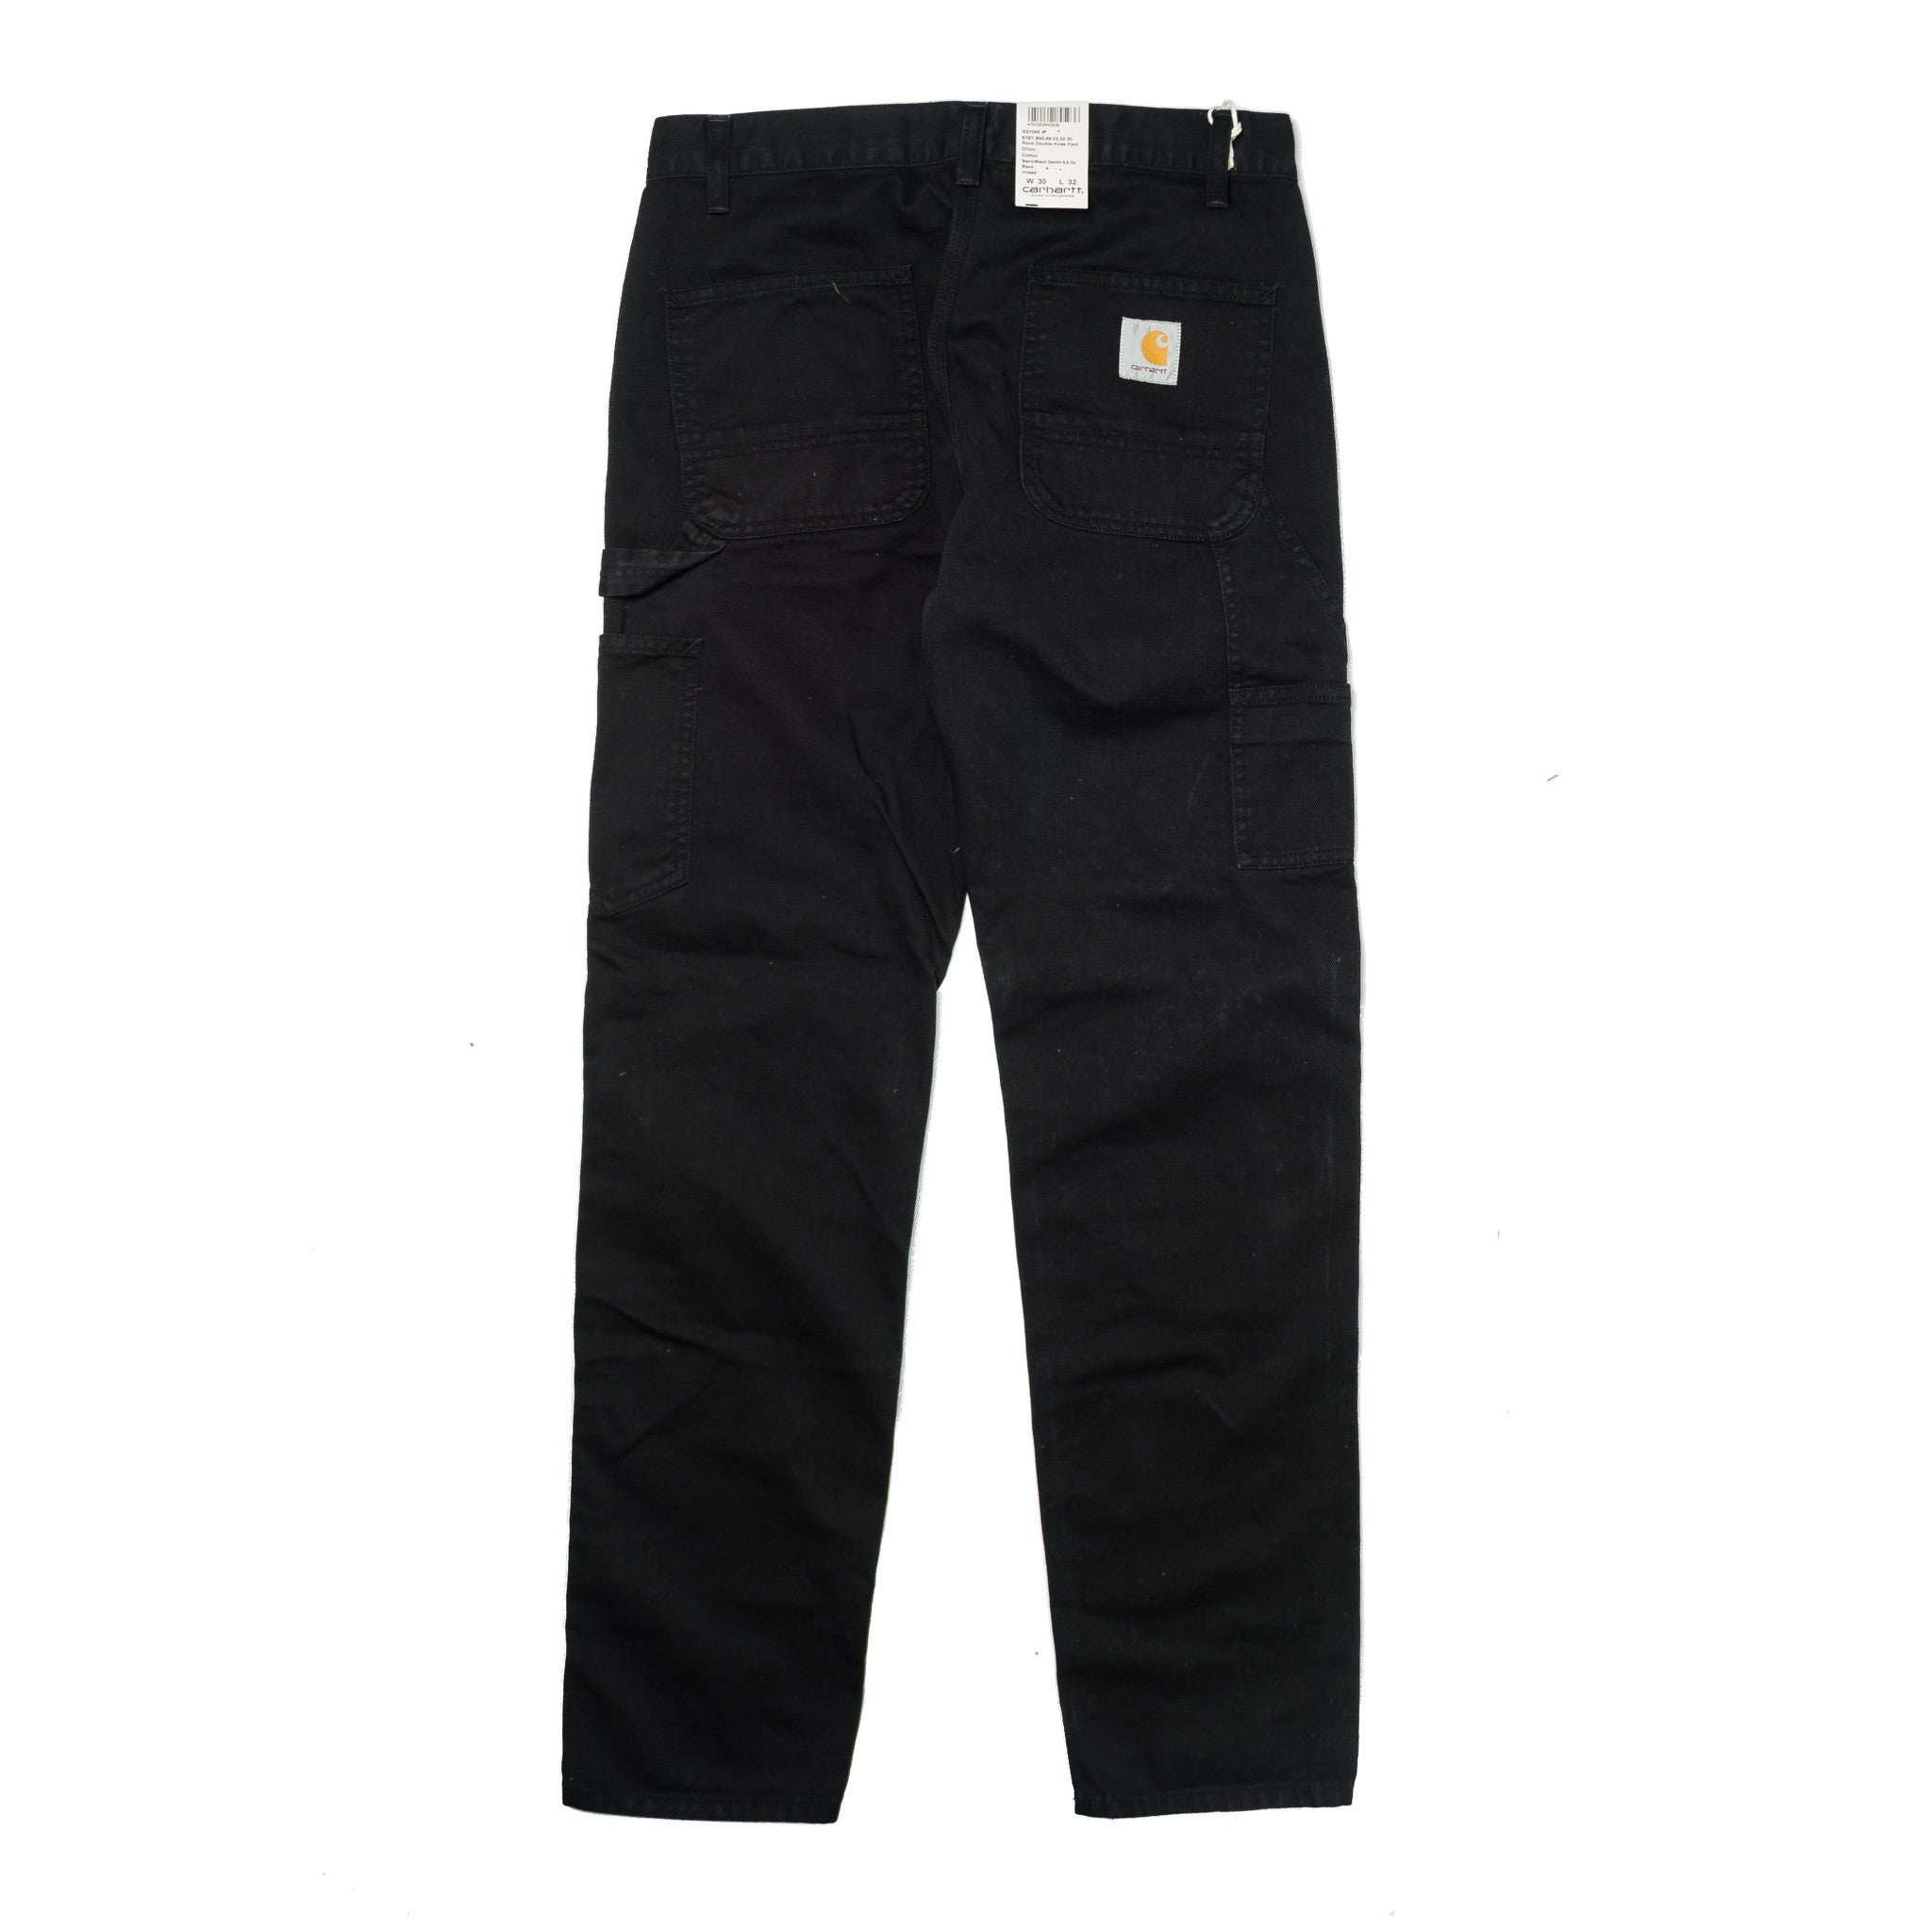 Ruck Double Knee Pant Black